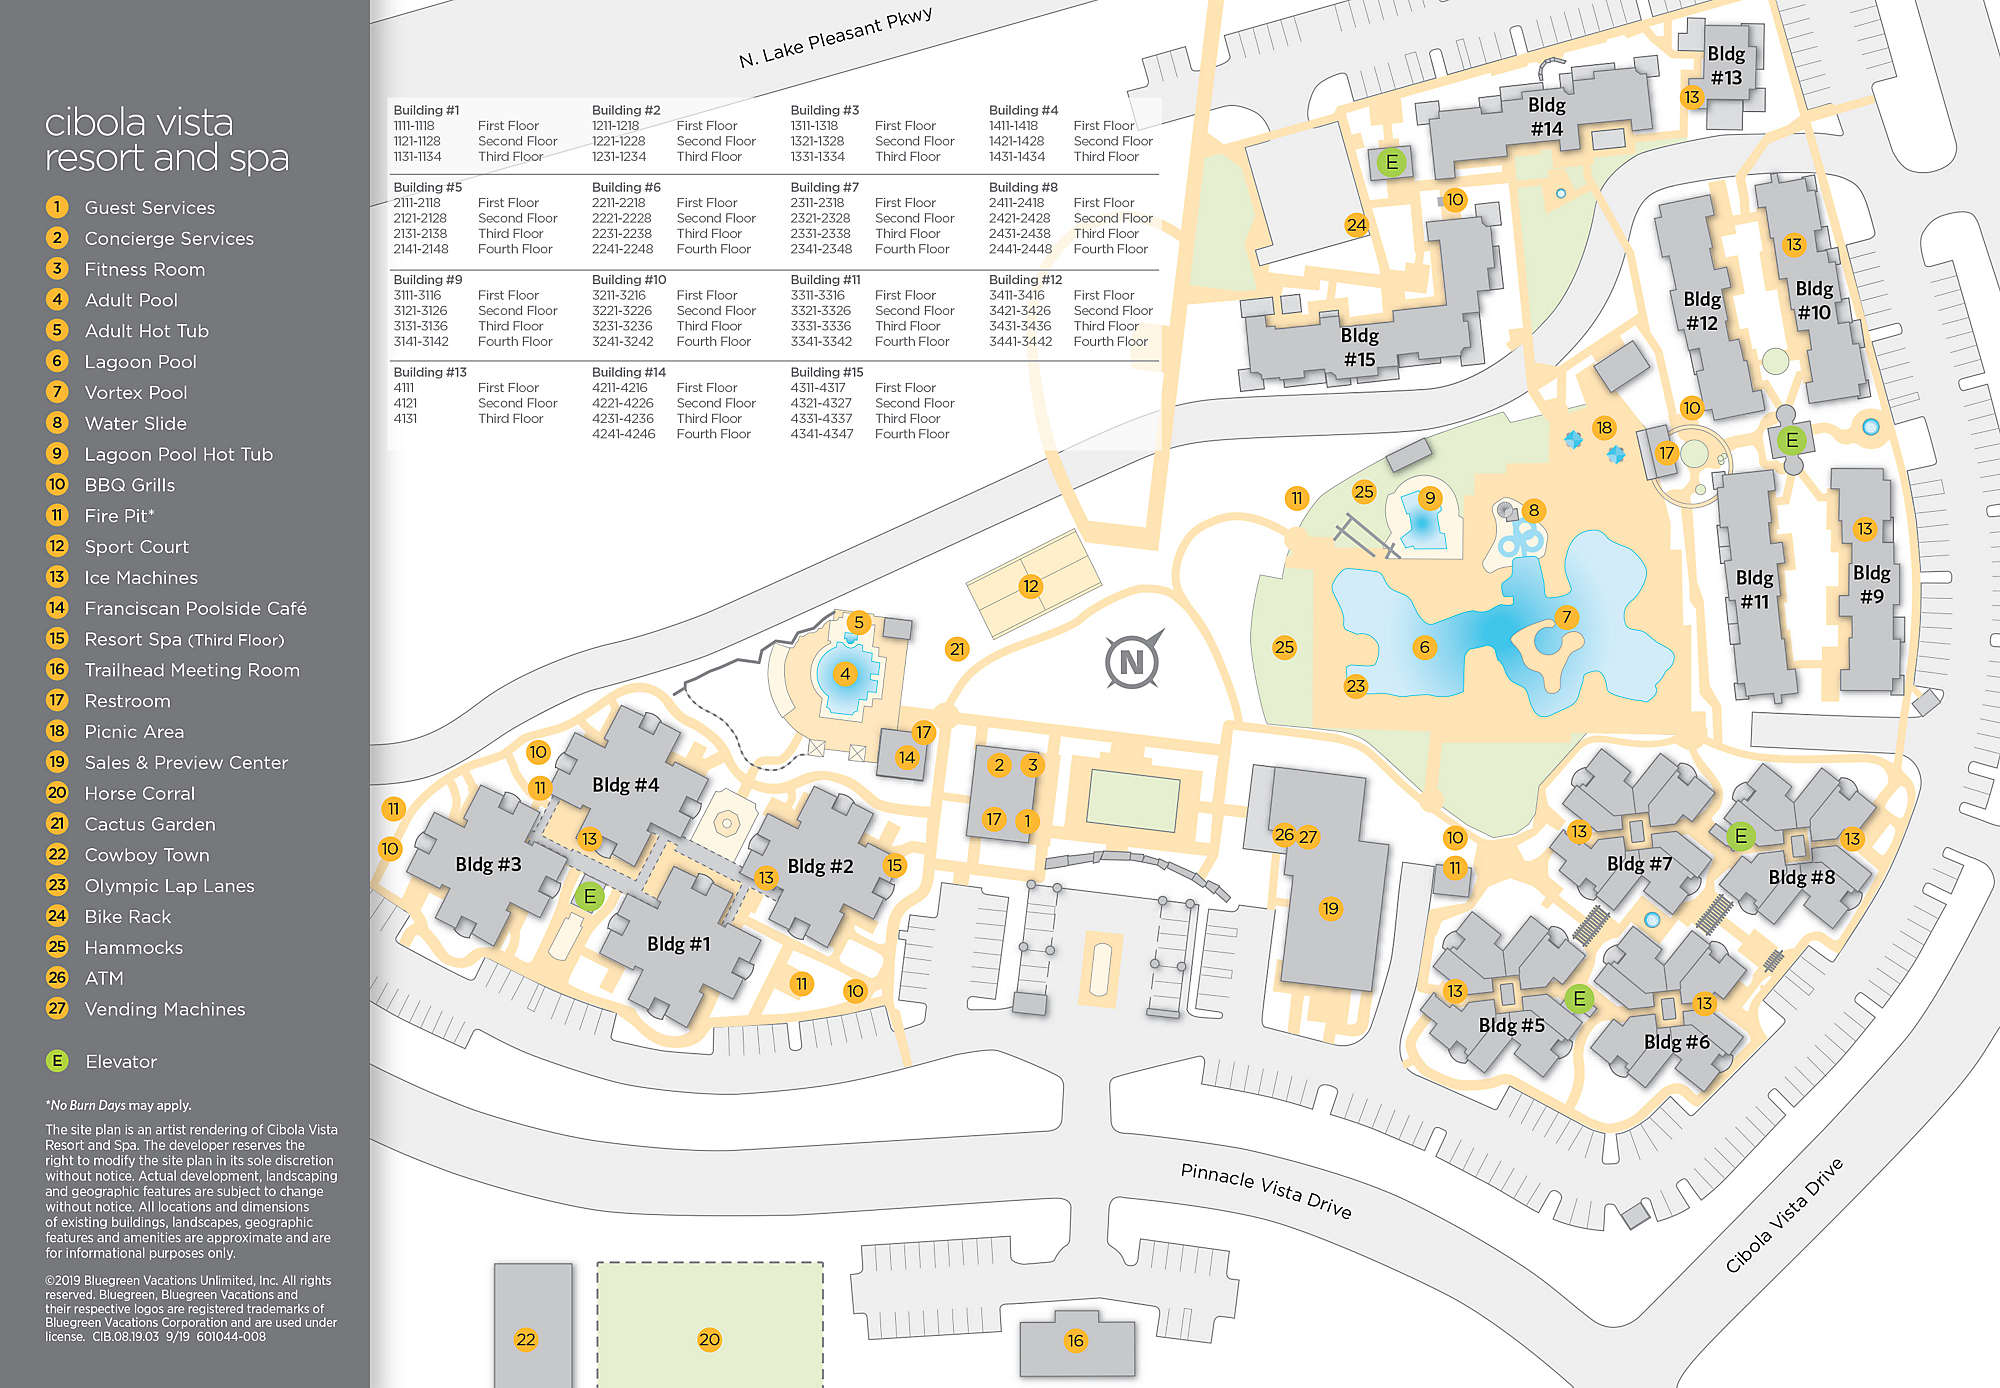 Cibola Vista Resort and Spa Site Map